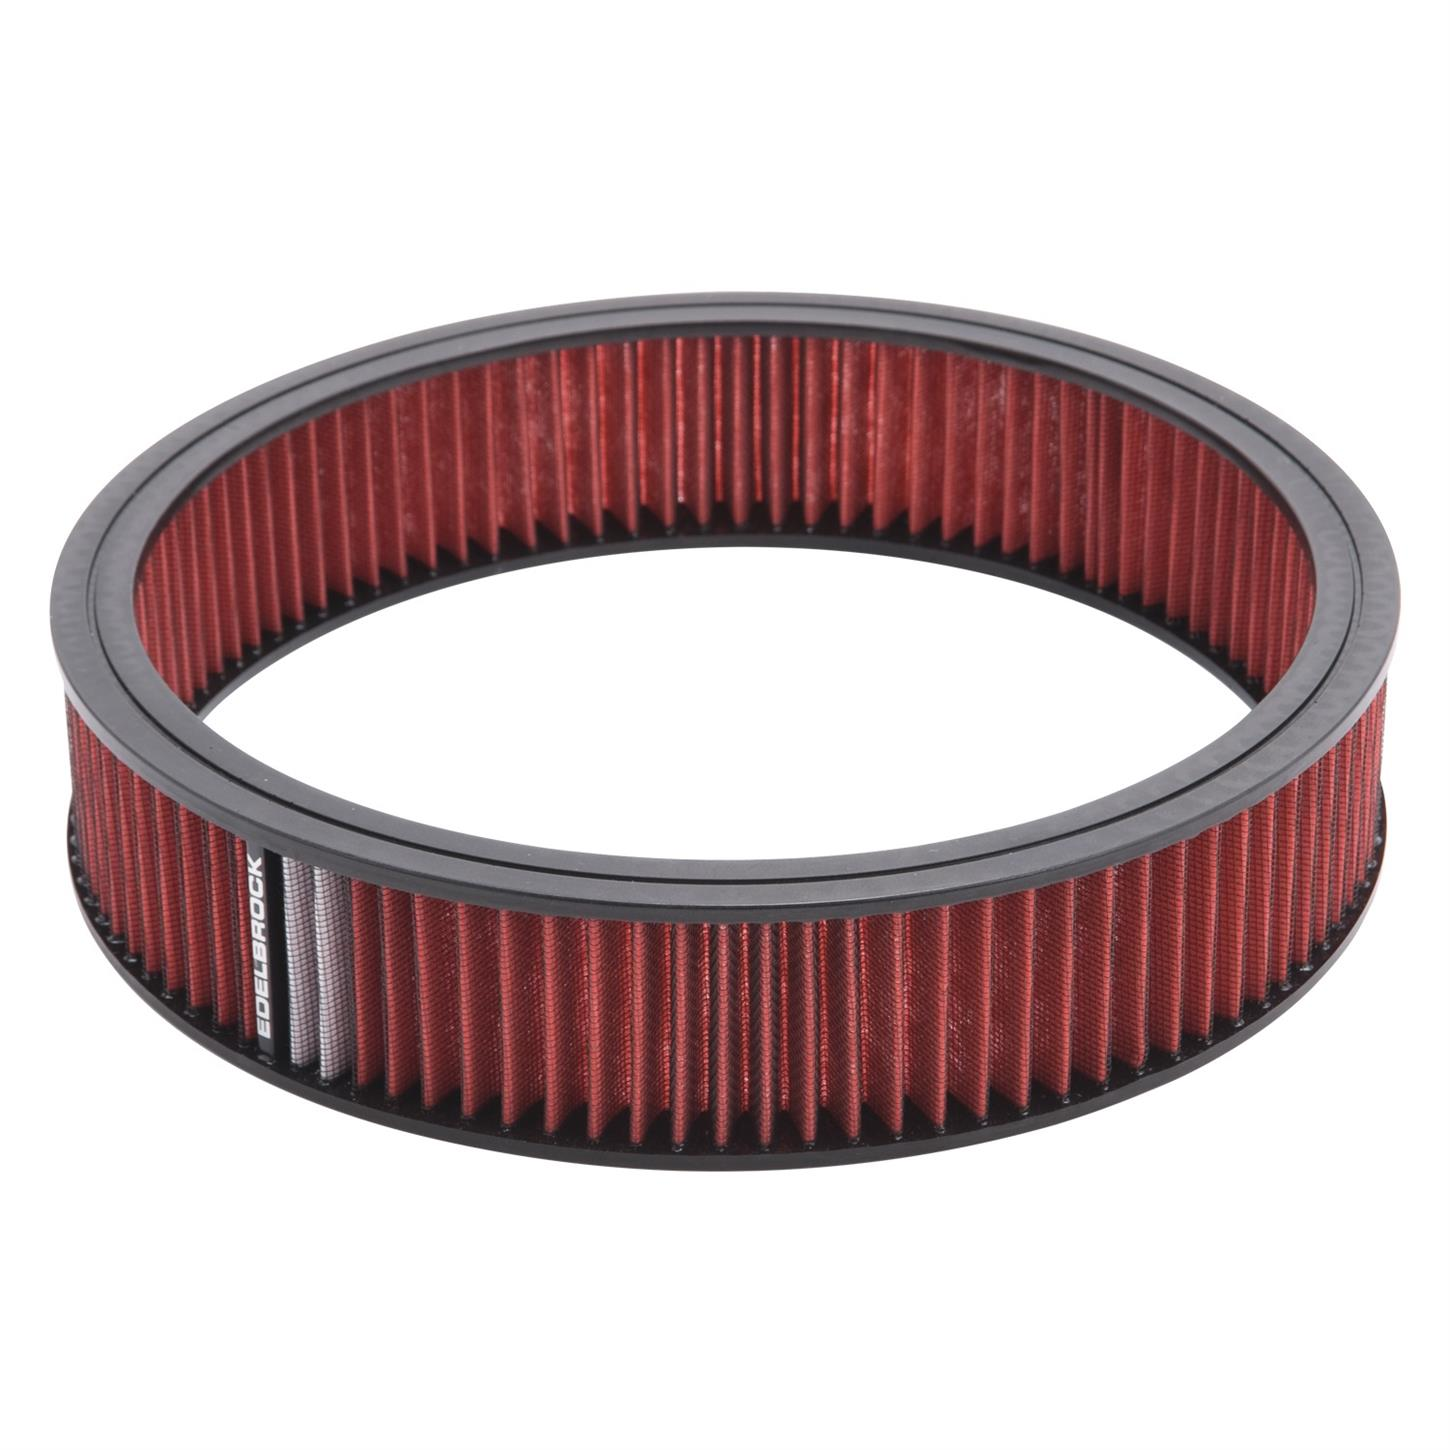 Champ Labs AF340 Champ Round Air Filter for